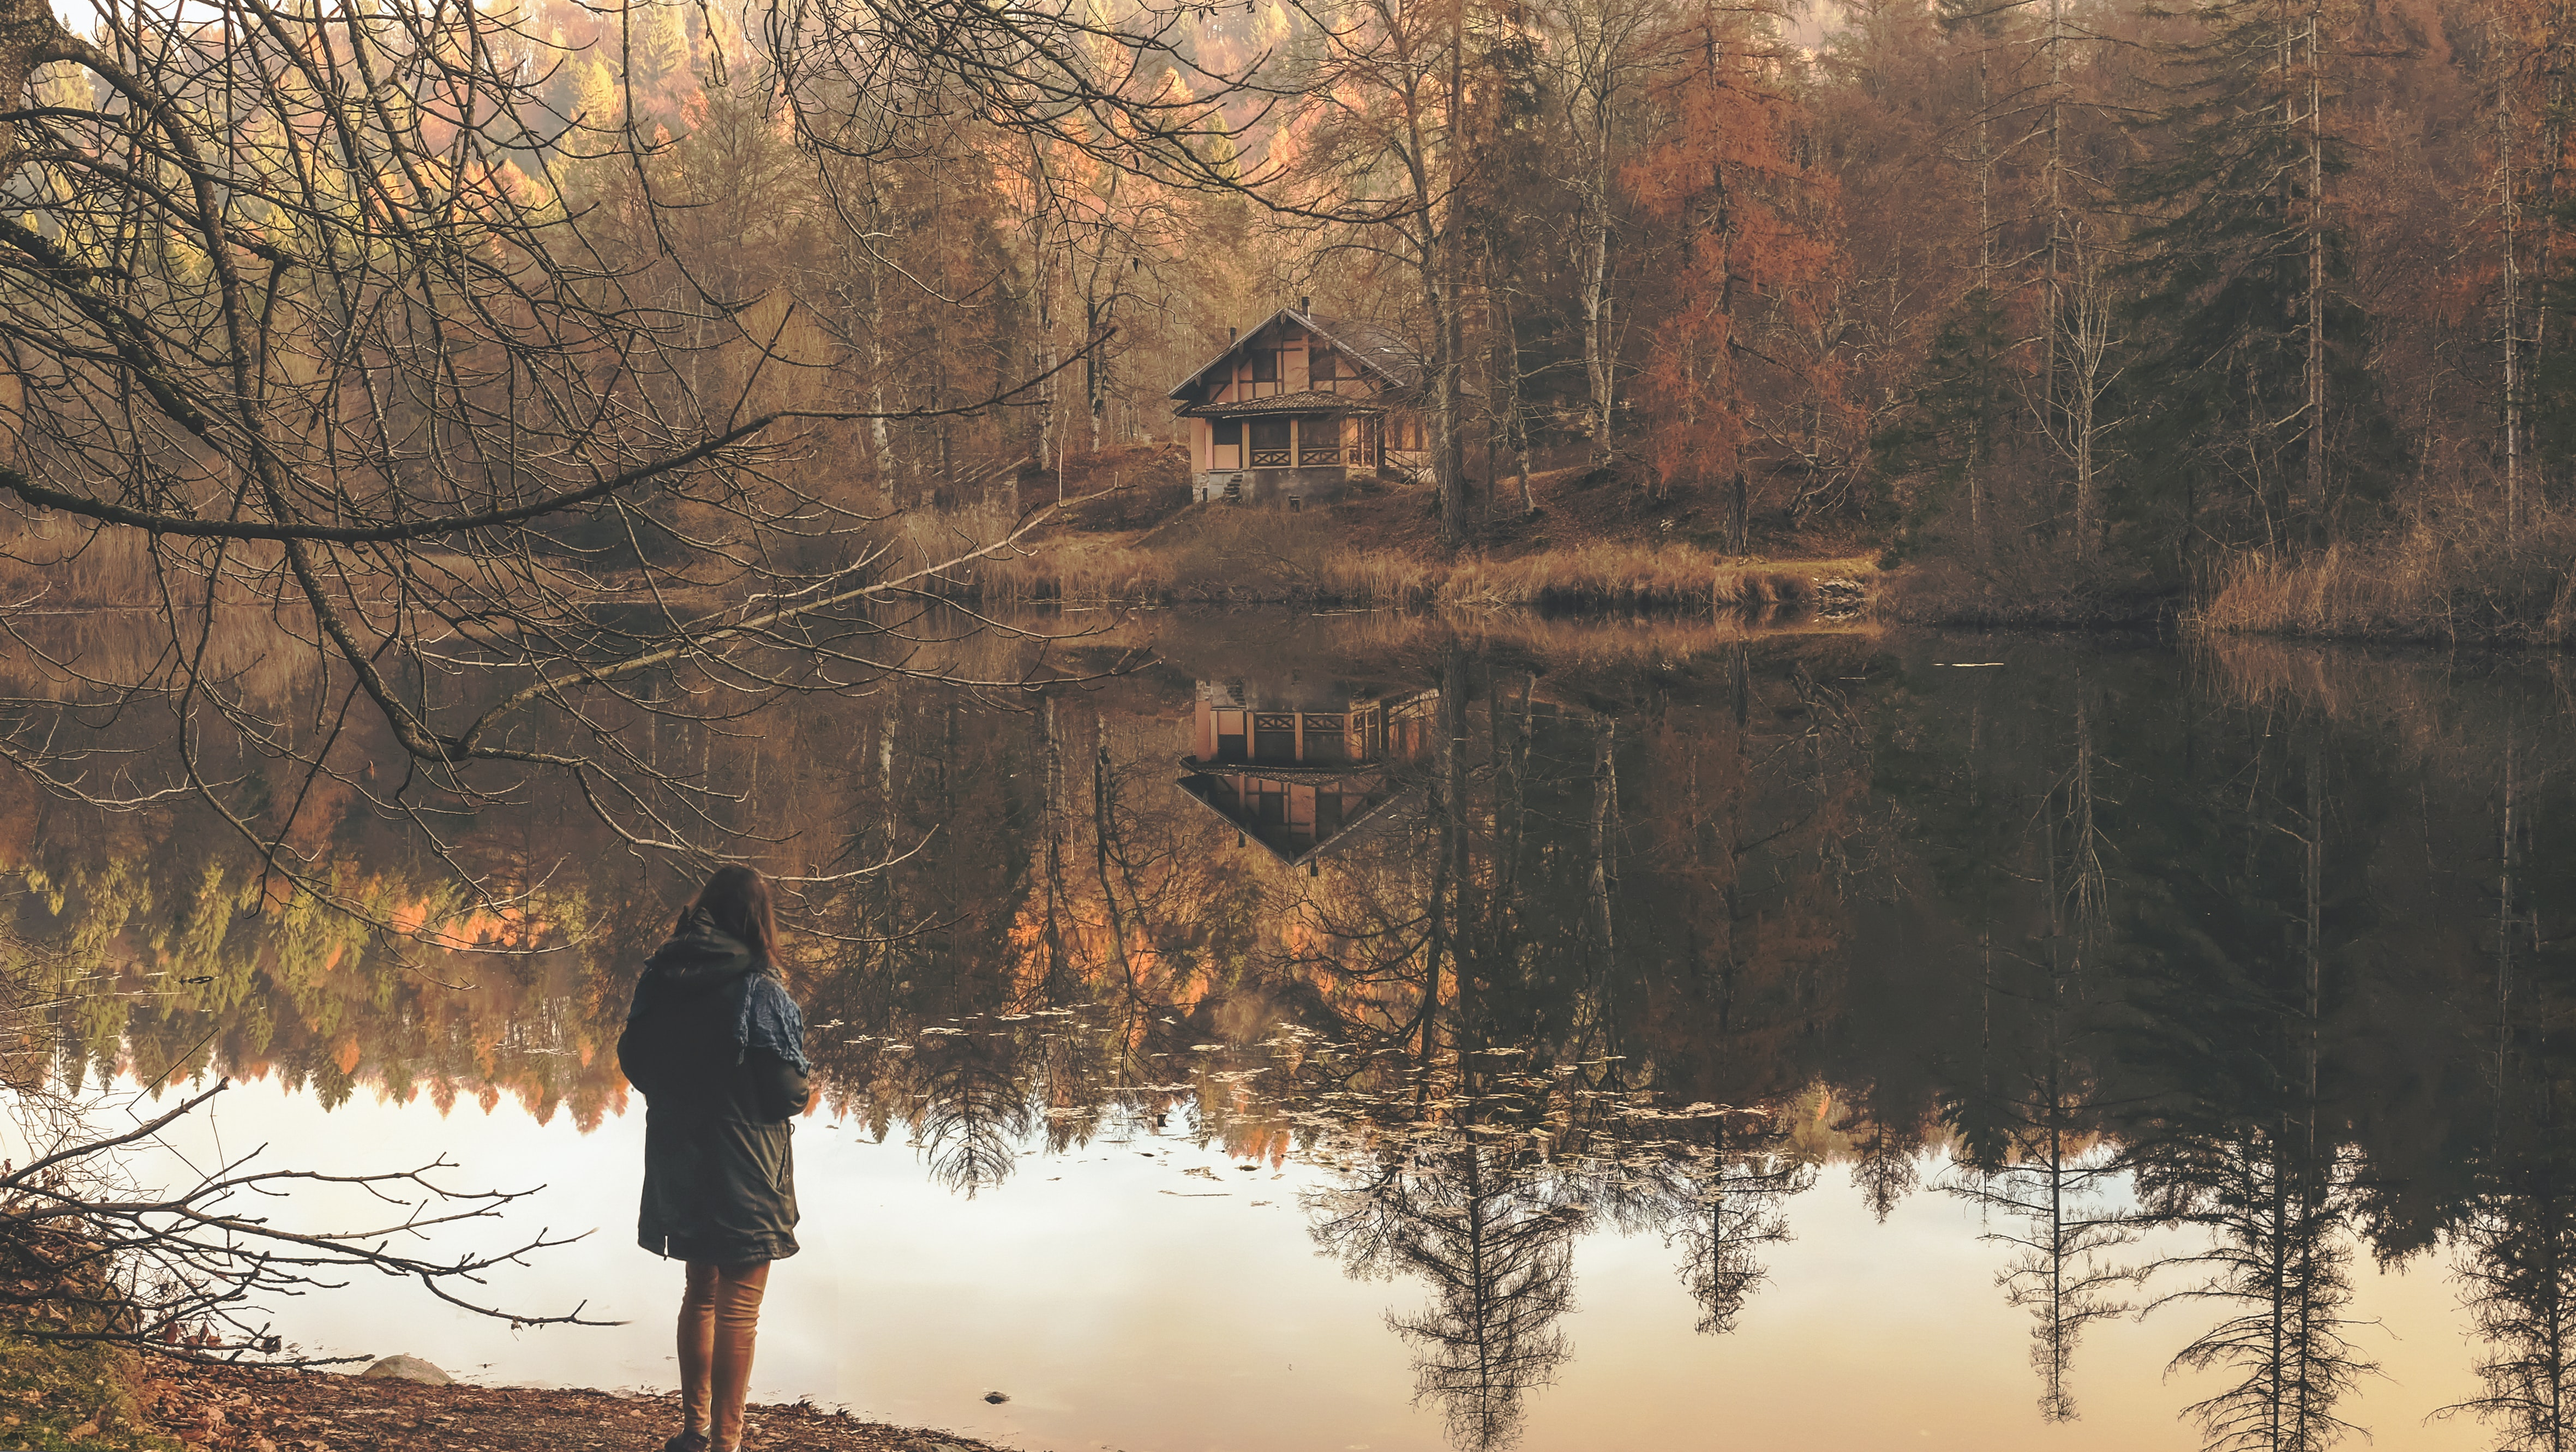 A woman standing on a lake's shore looking off into a cabin on the other shore